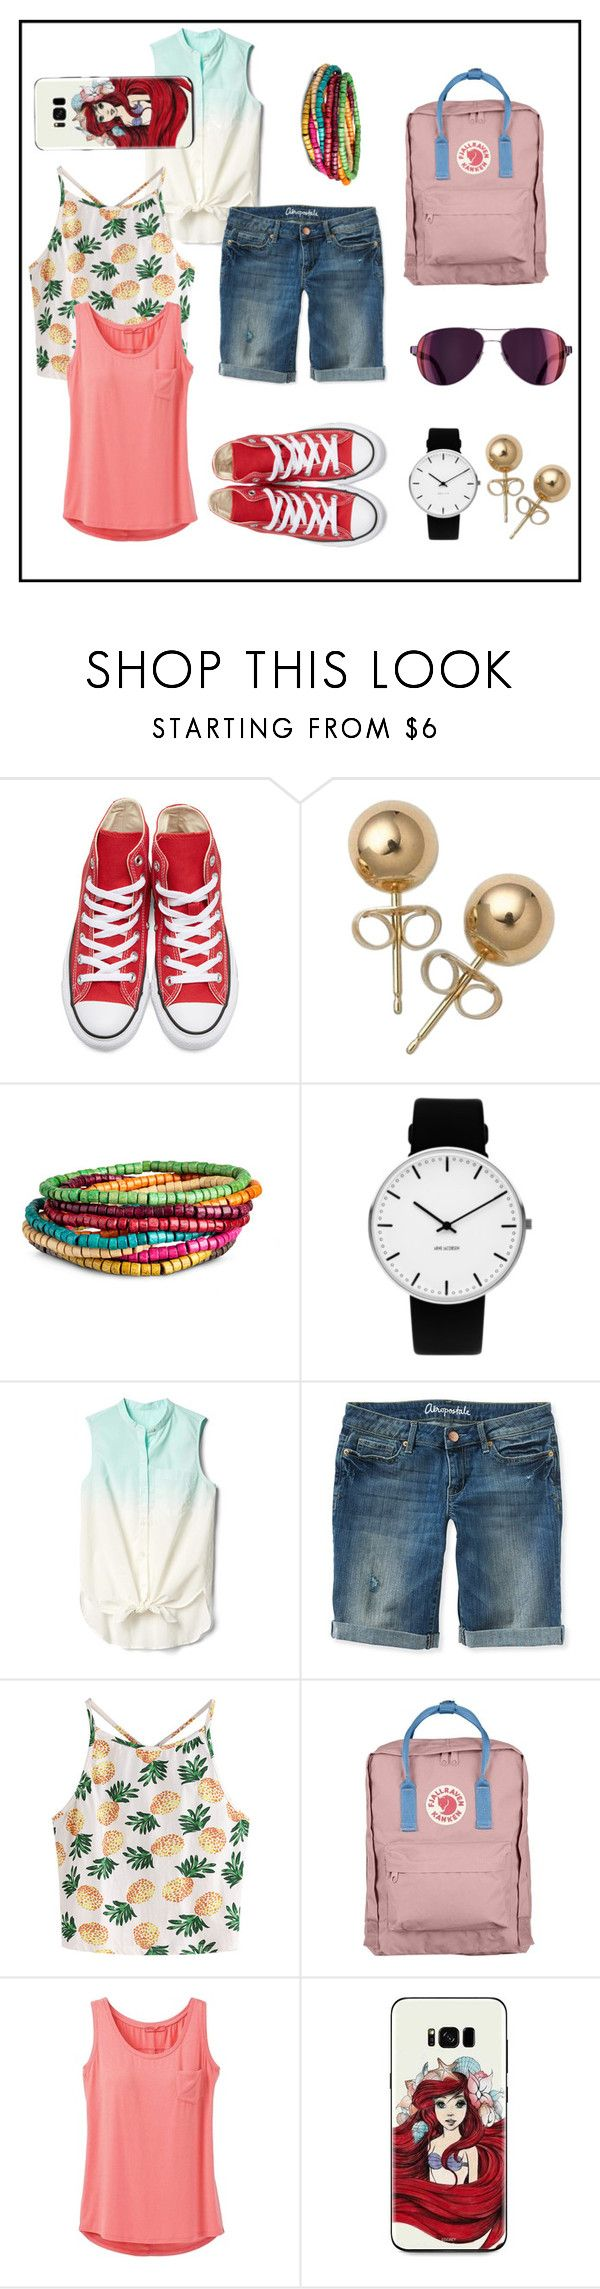 """Summer in the city"" by izostworekblogspot on Polyvore featuring moda, Converse, Bling Jewelry, Rosendahl, Gap, Aéropostale, WithChic, Fjällräven i prAna"